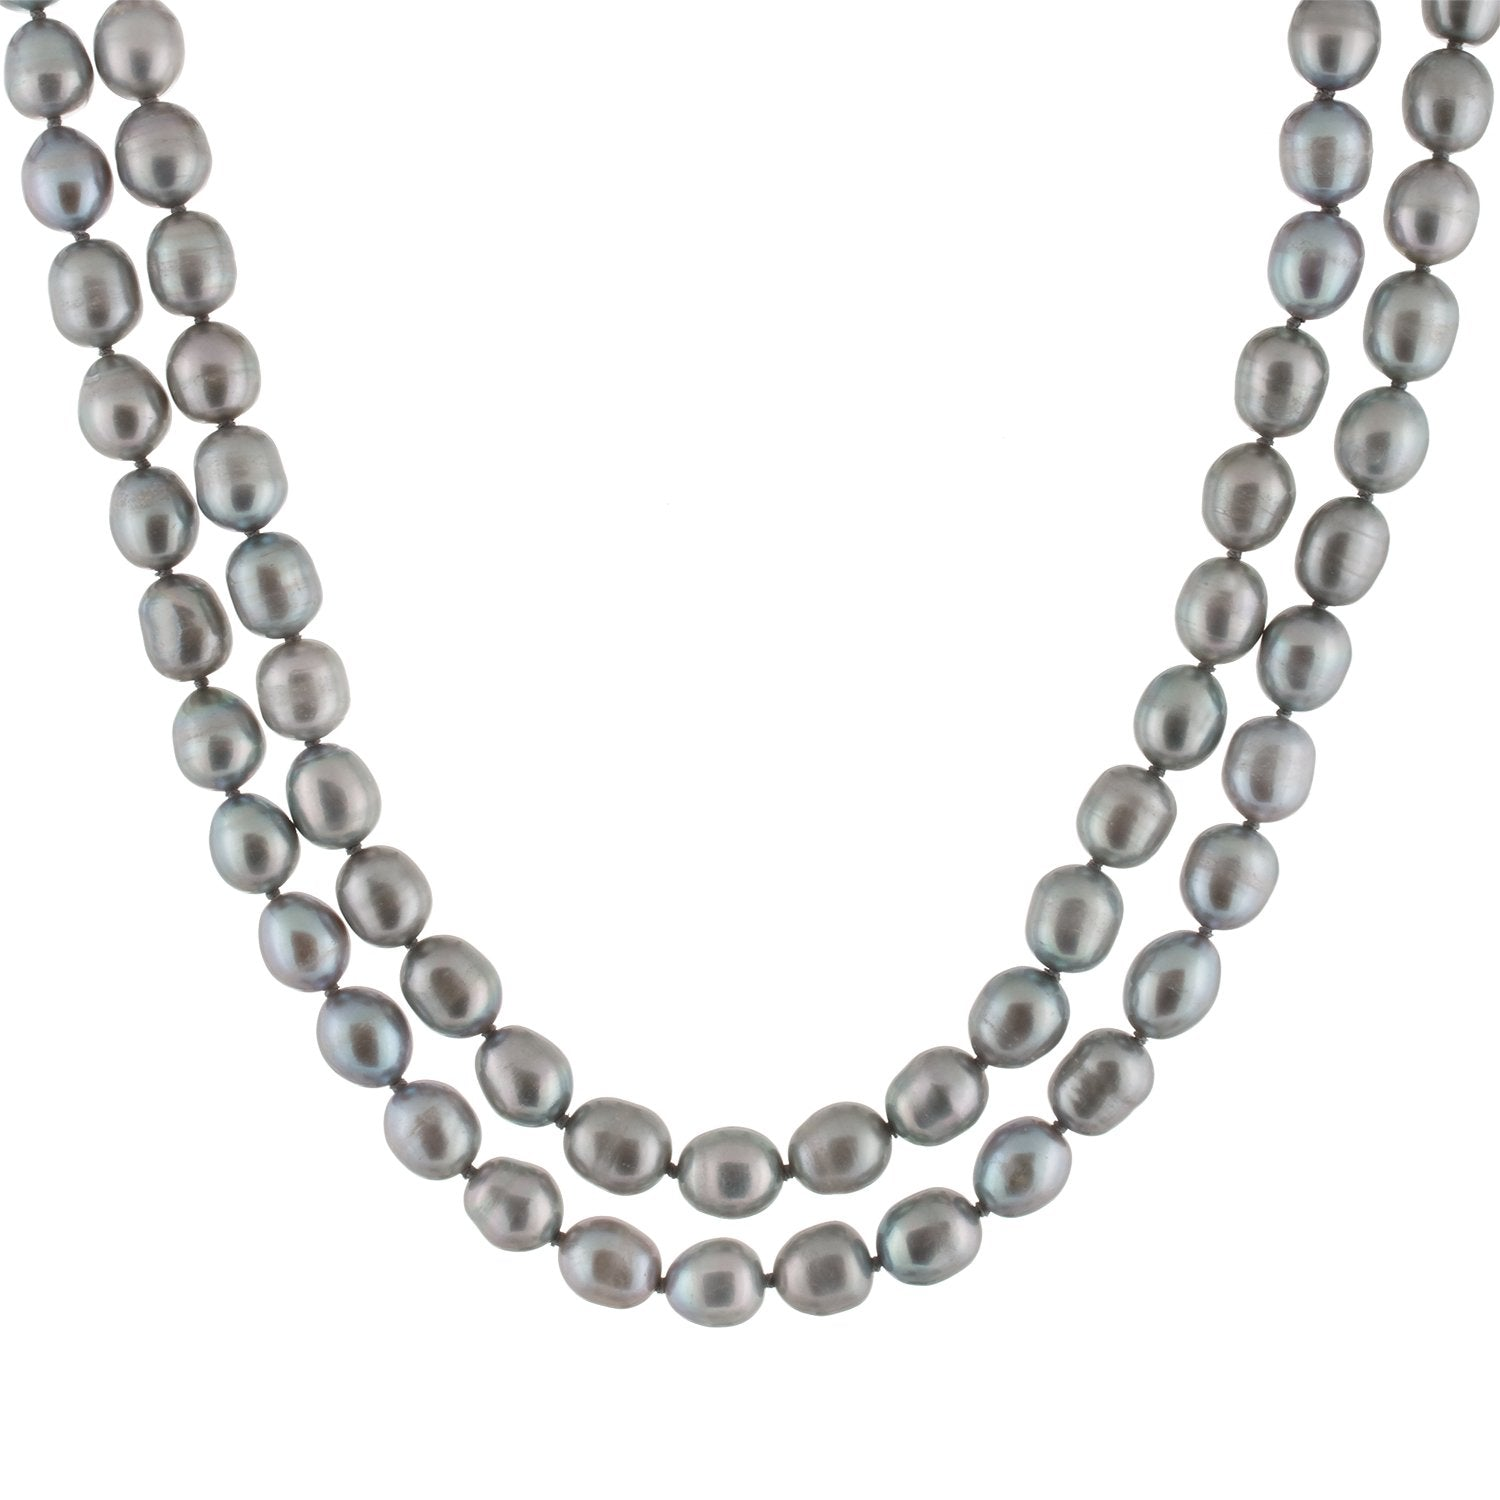 Bright Gray Colored Endless Pearl Necklace